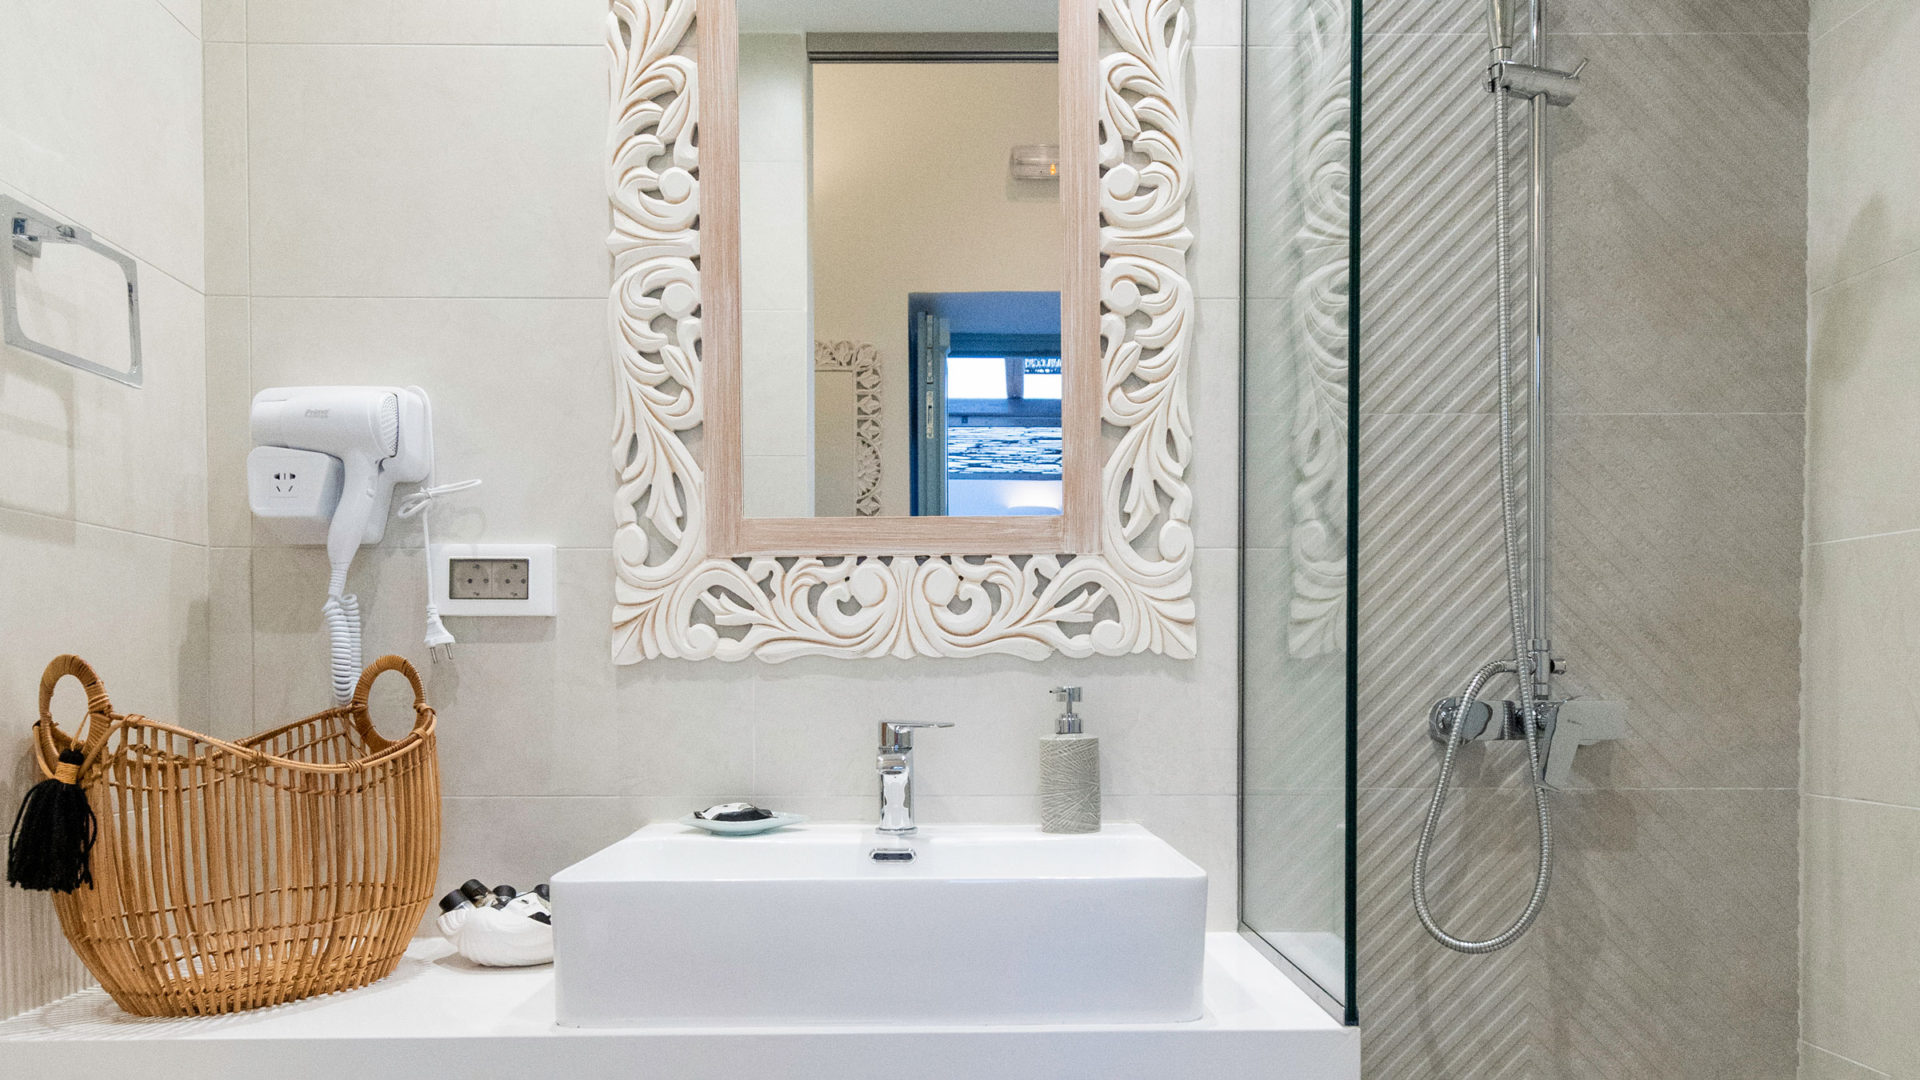 WC with walk-in shower